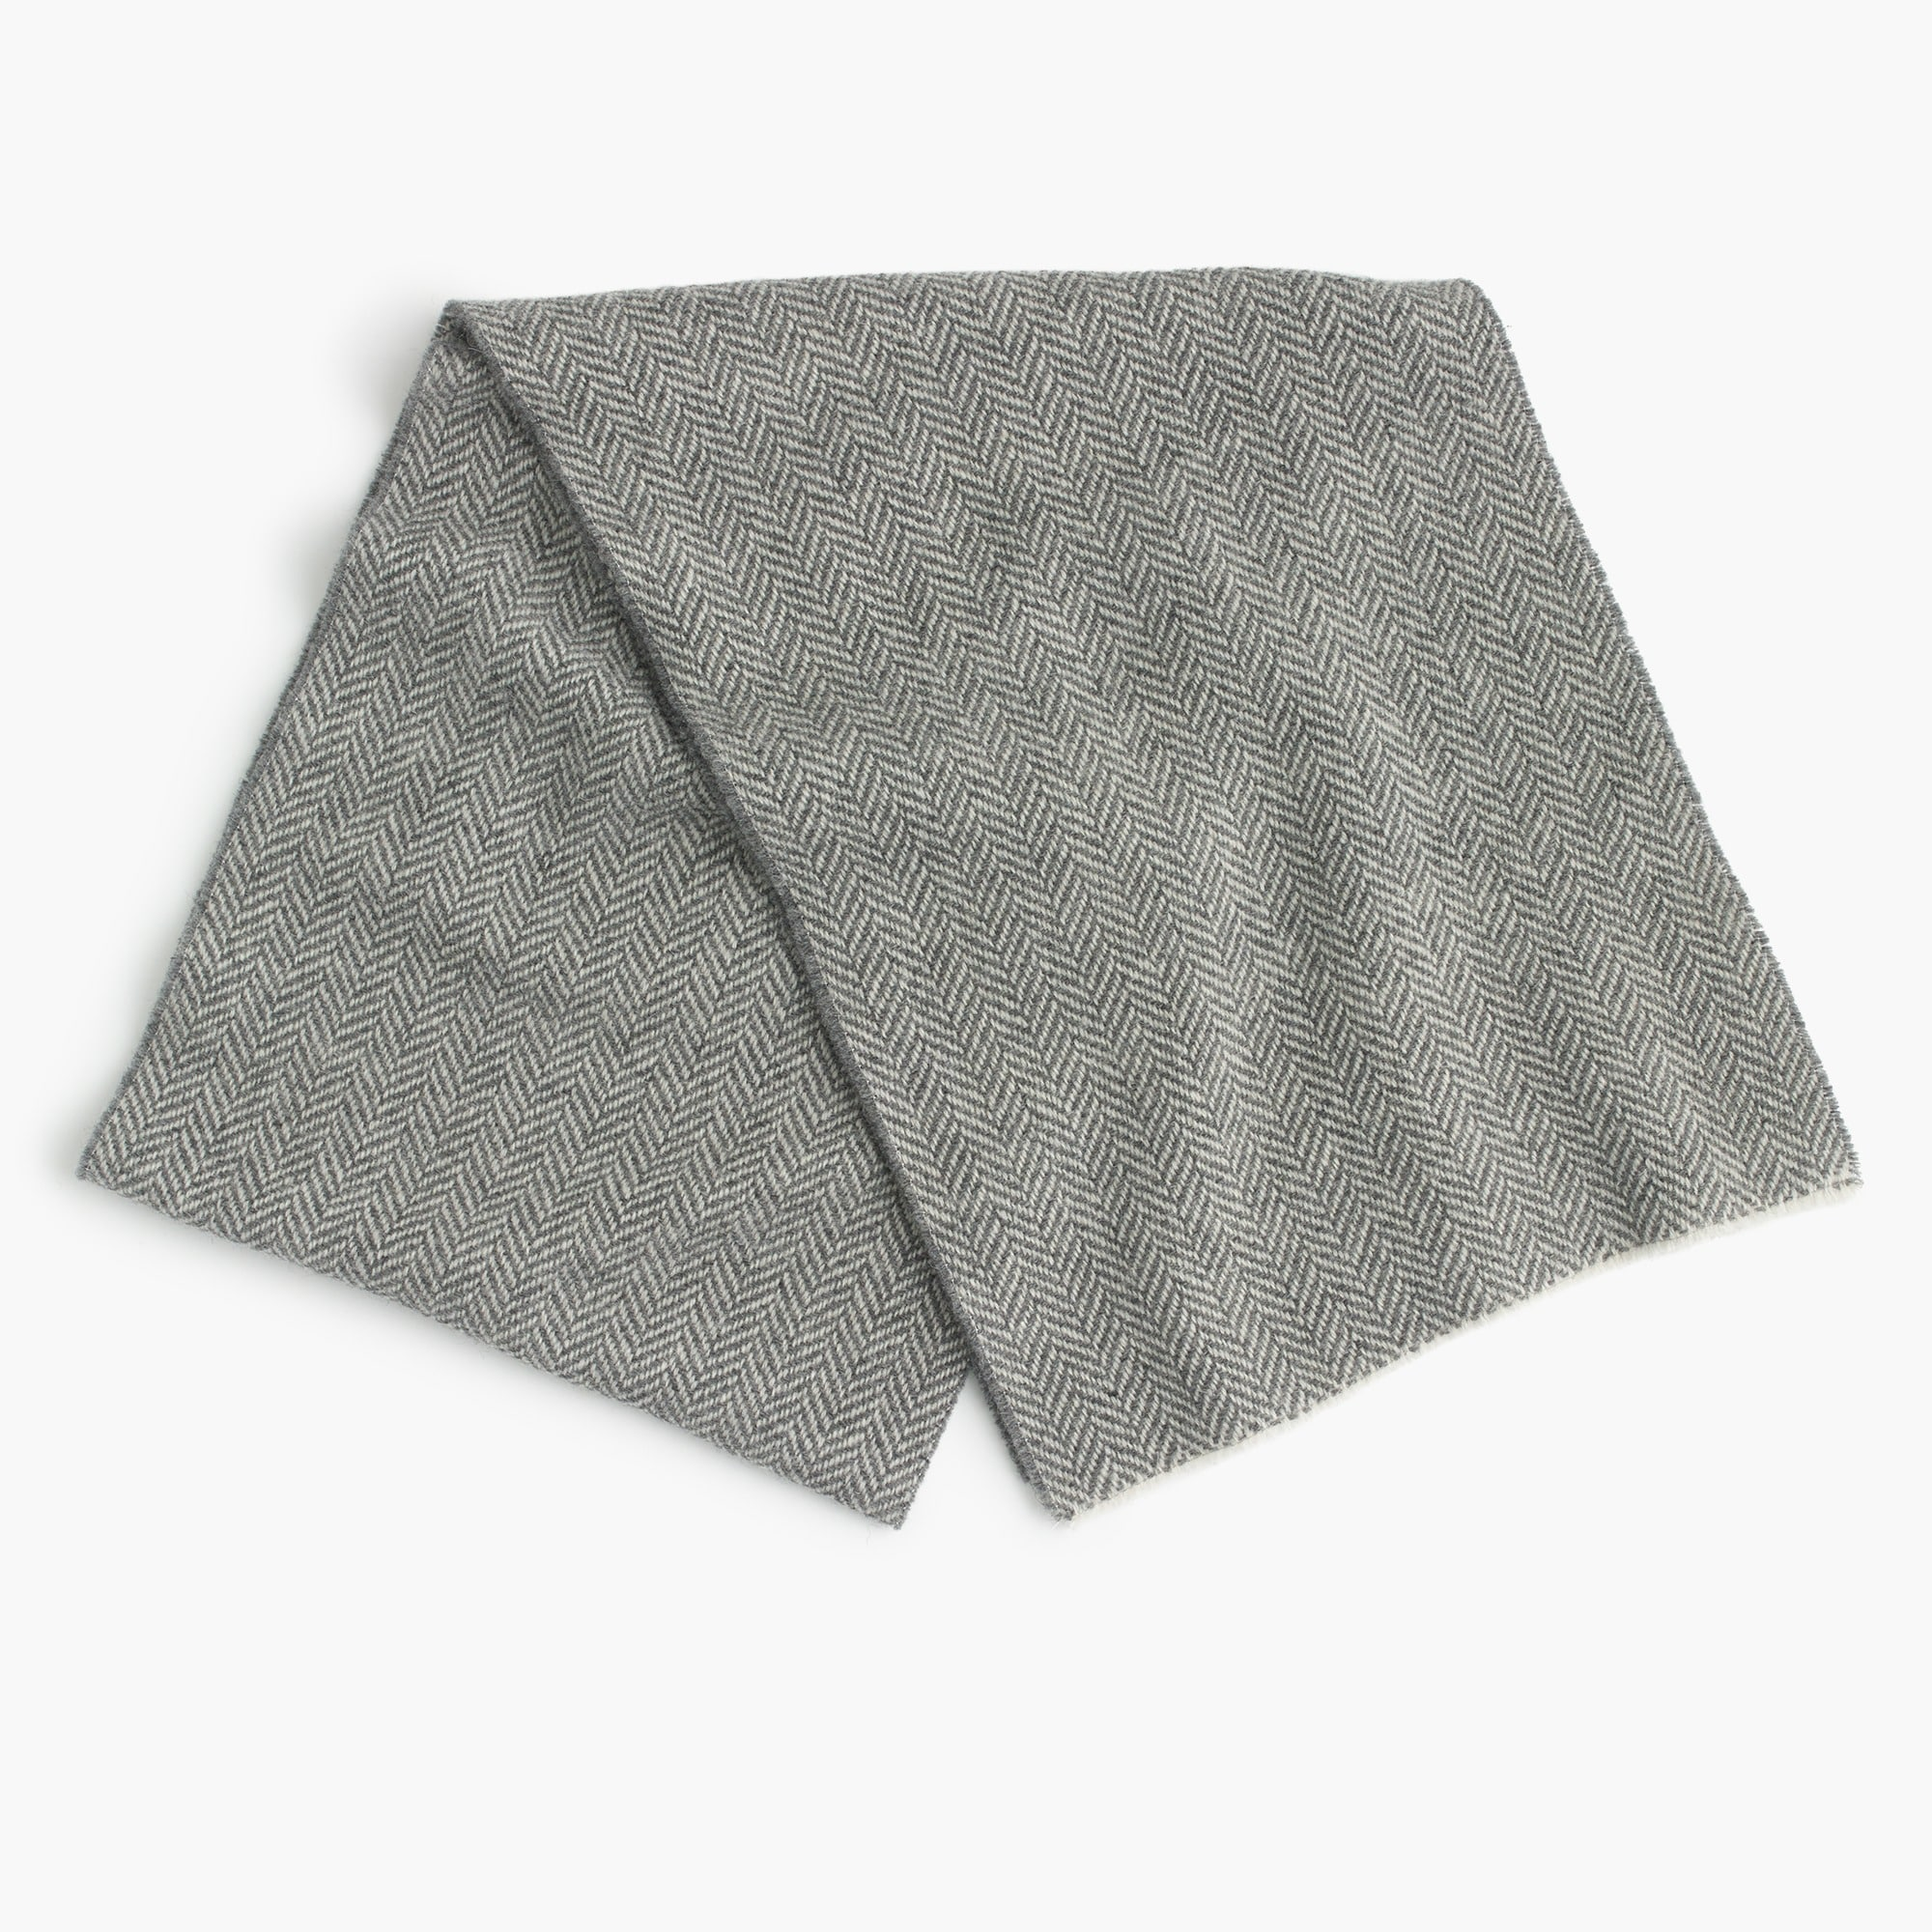 Herringbone twill wool scarf